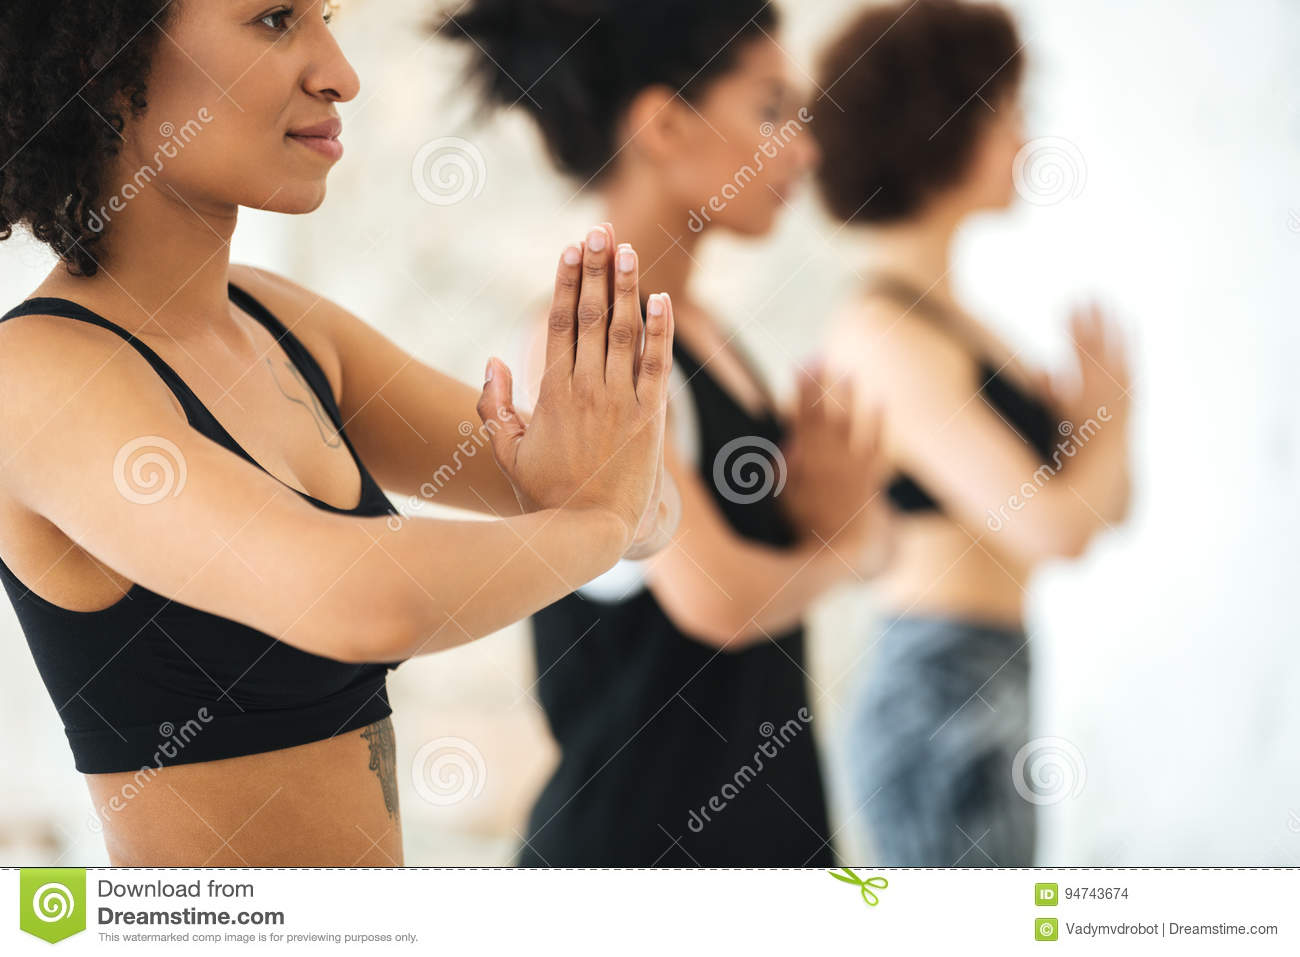 Close up of multicultural group of women practicing yoga